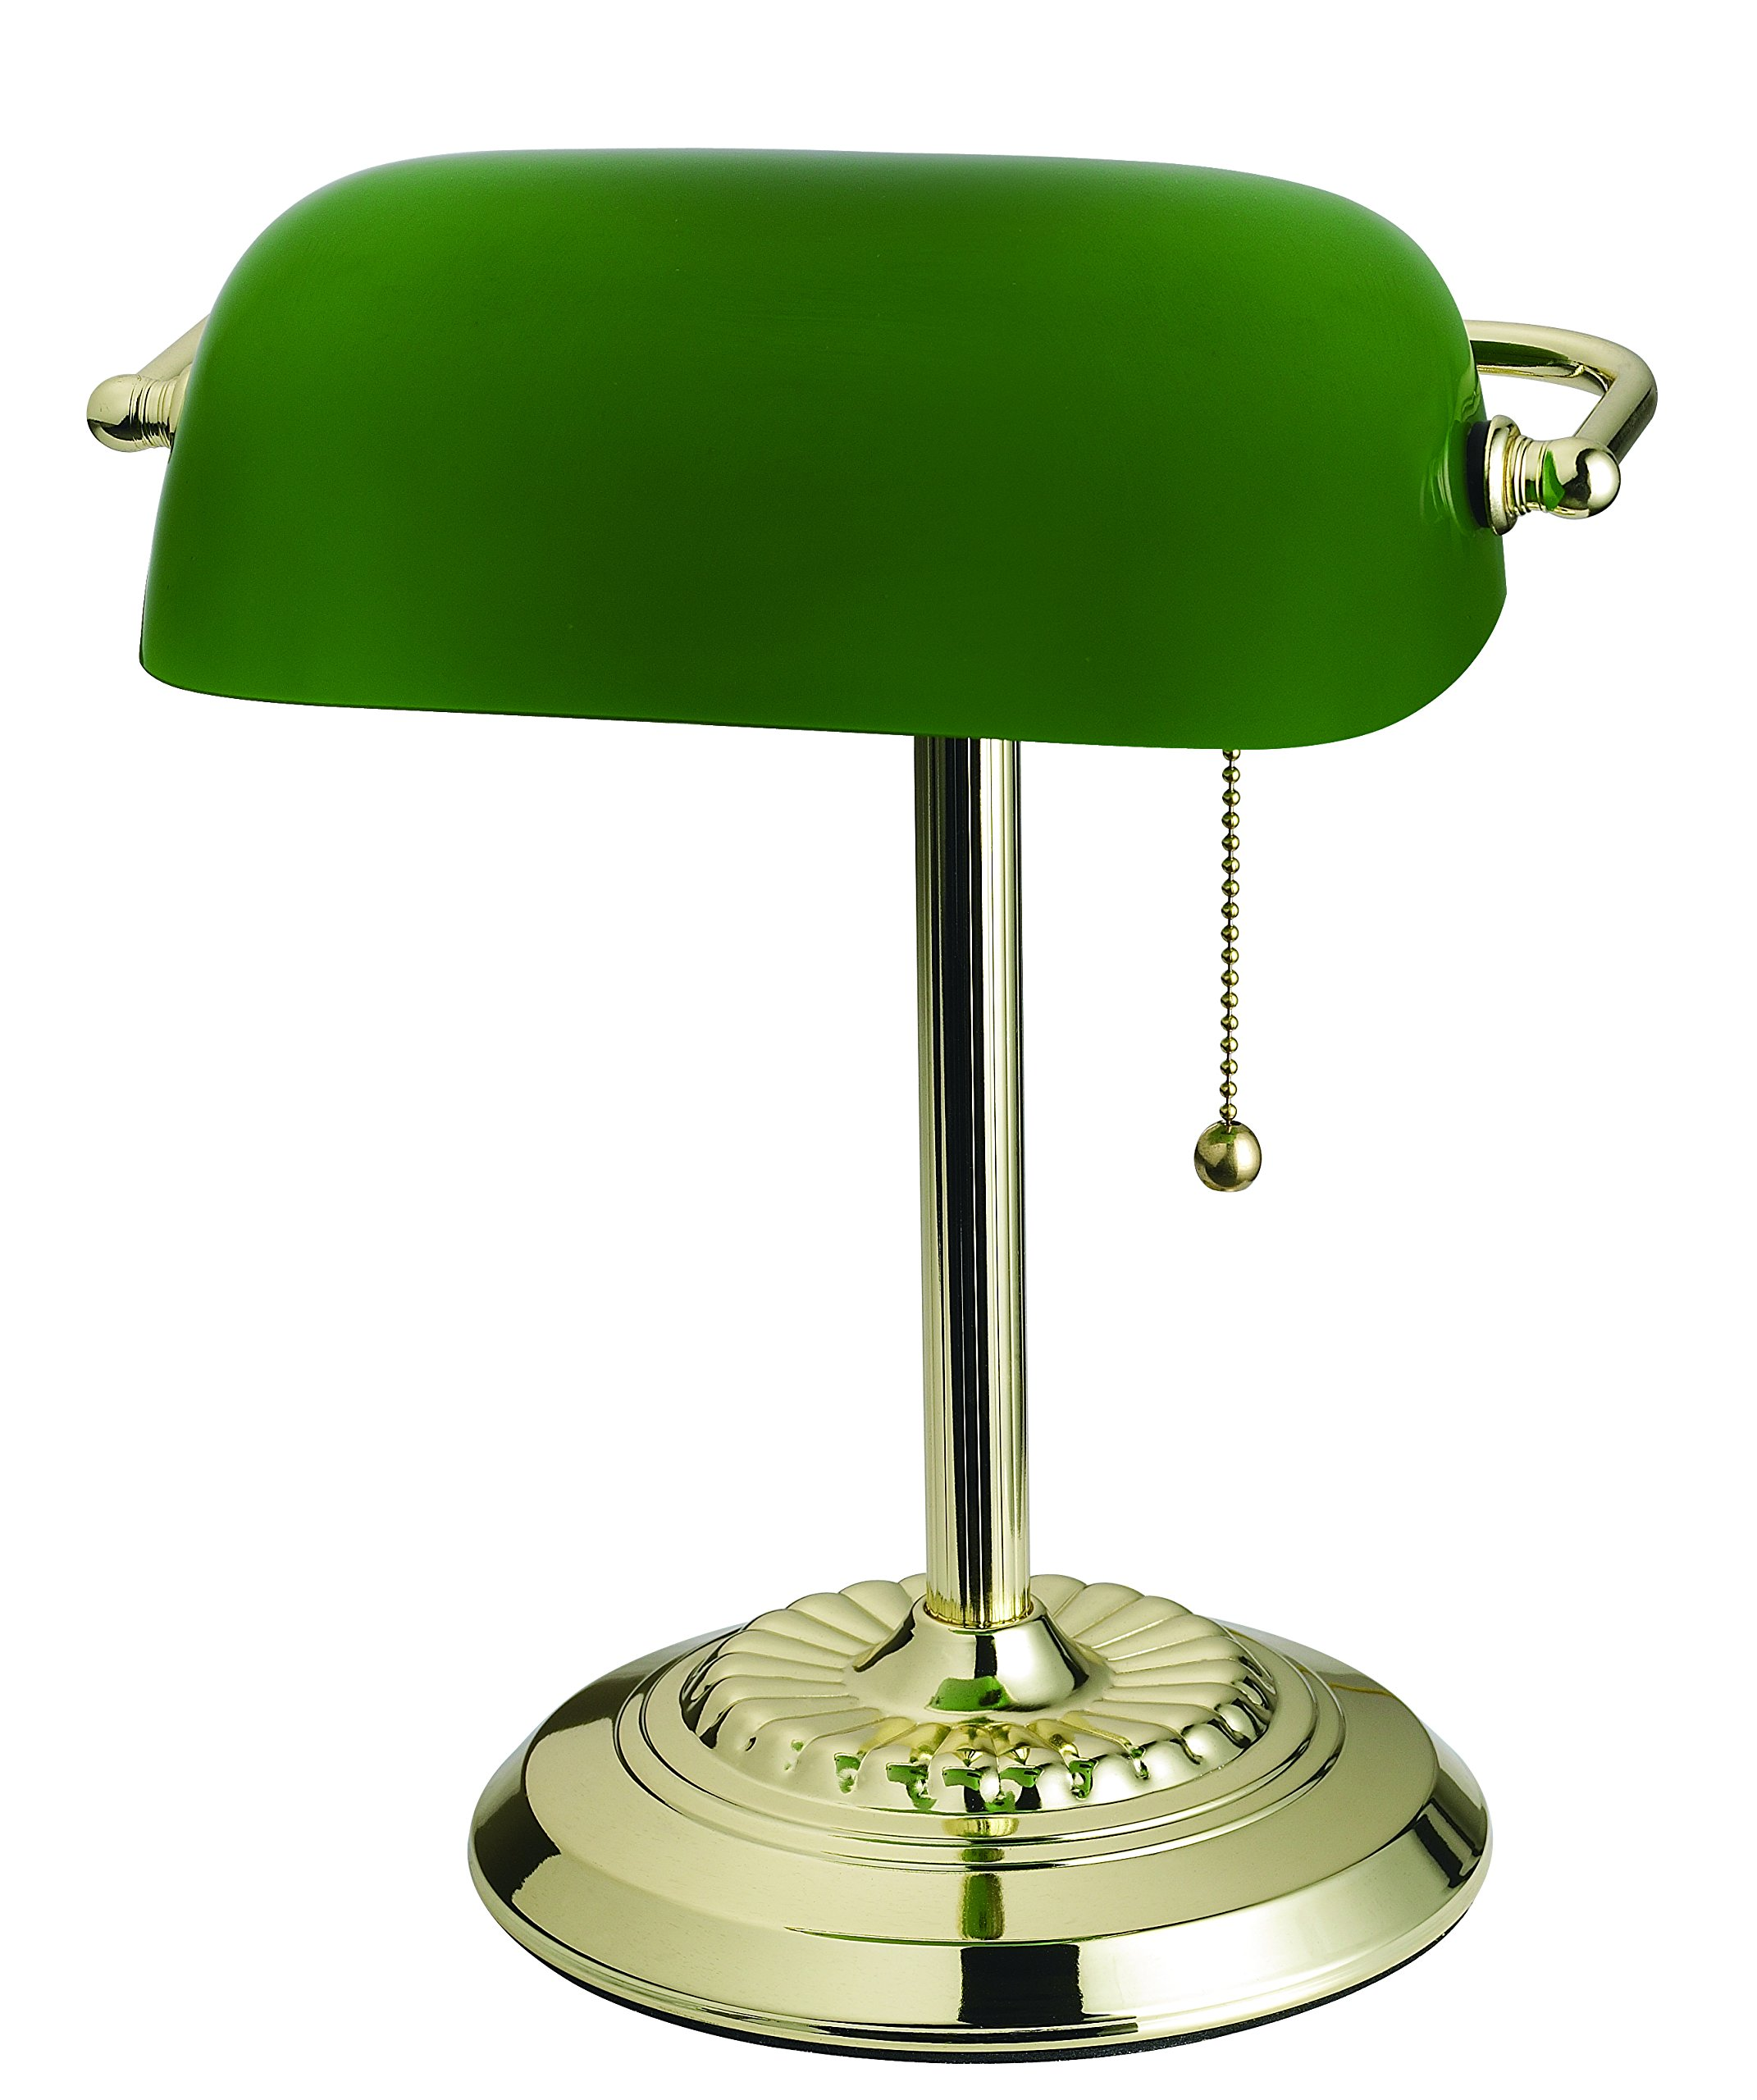 Catalina Lighting 17466-017 Franklin Banker's Lamp, Plated Brass with Adjustable Green Glass Shade, 14.5'',